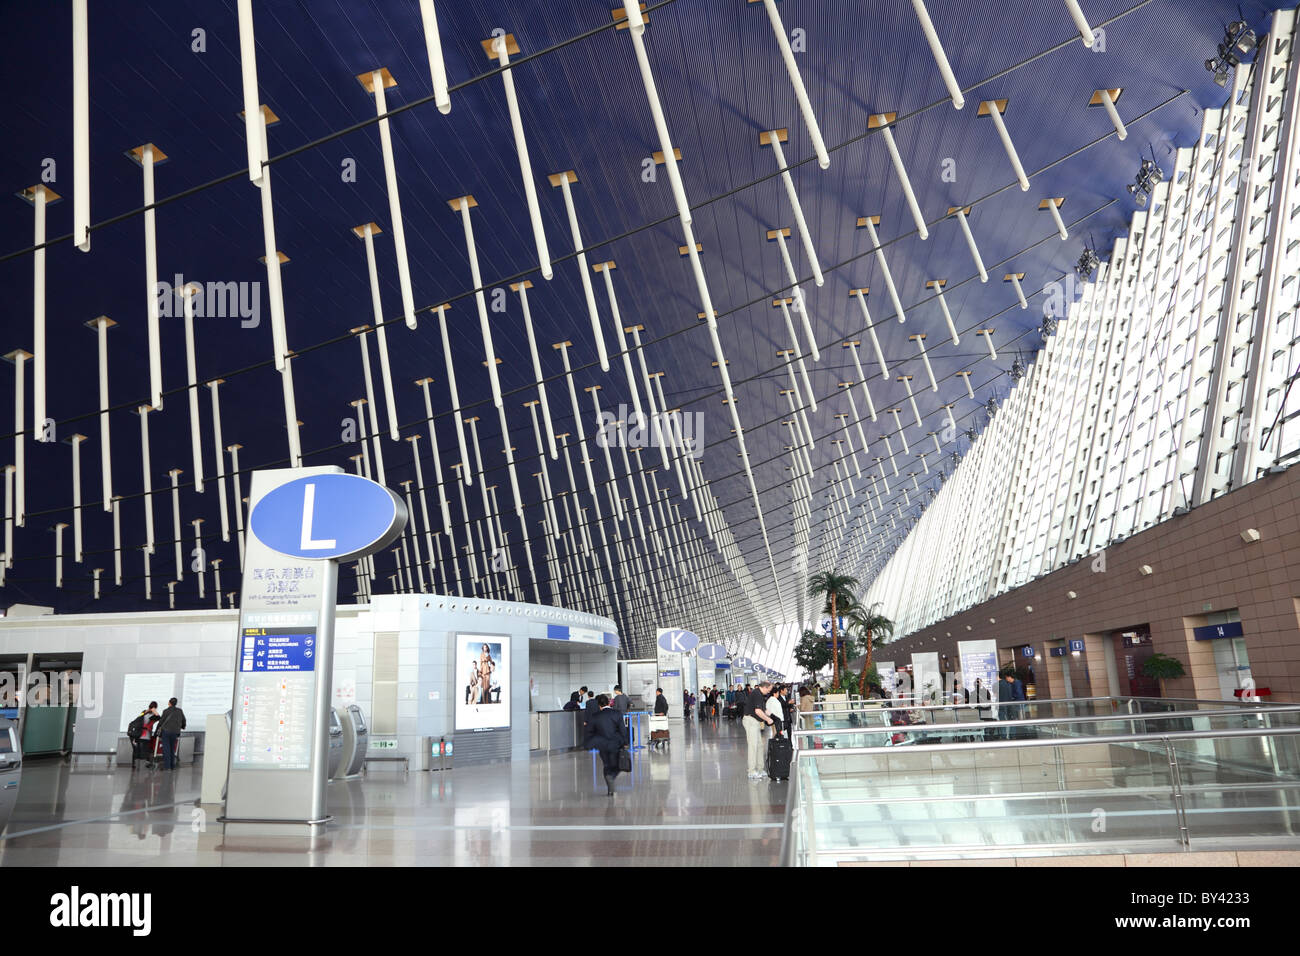 Shanghai International Airport. Stockbild